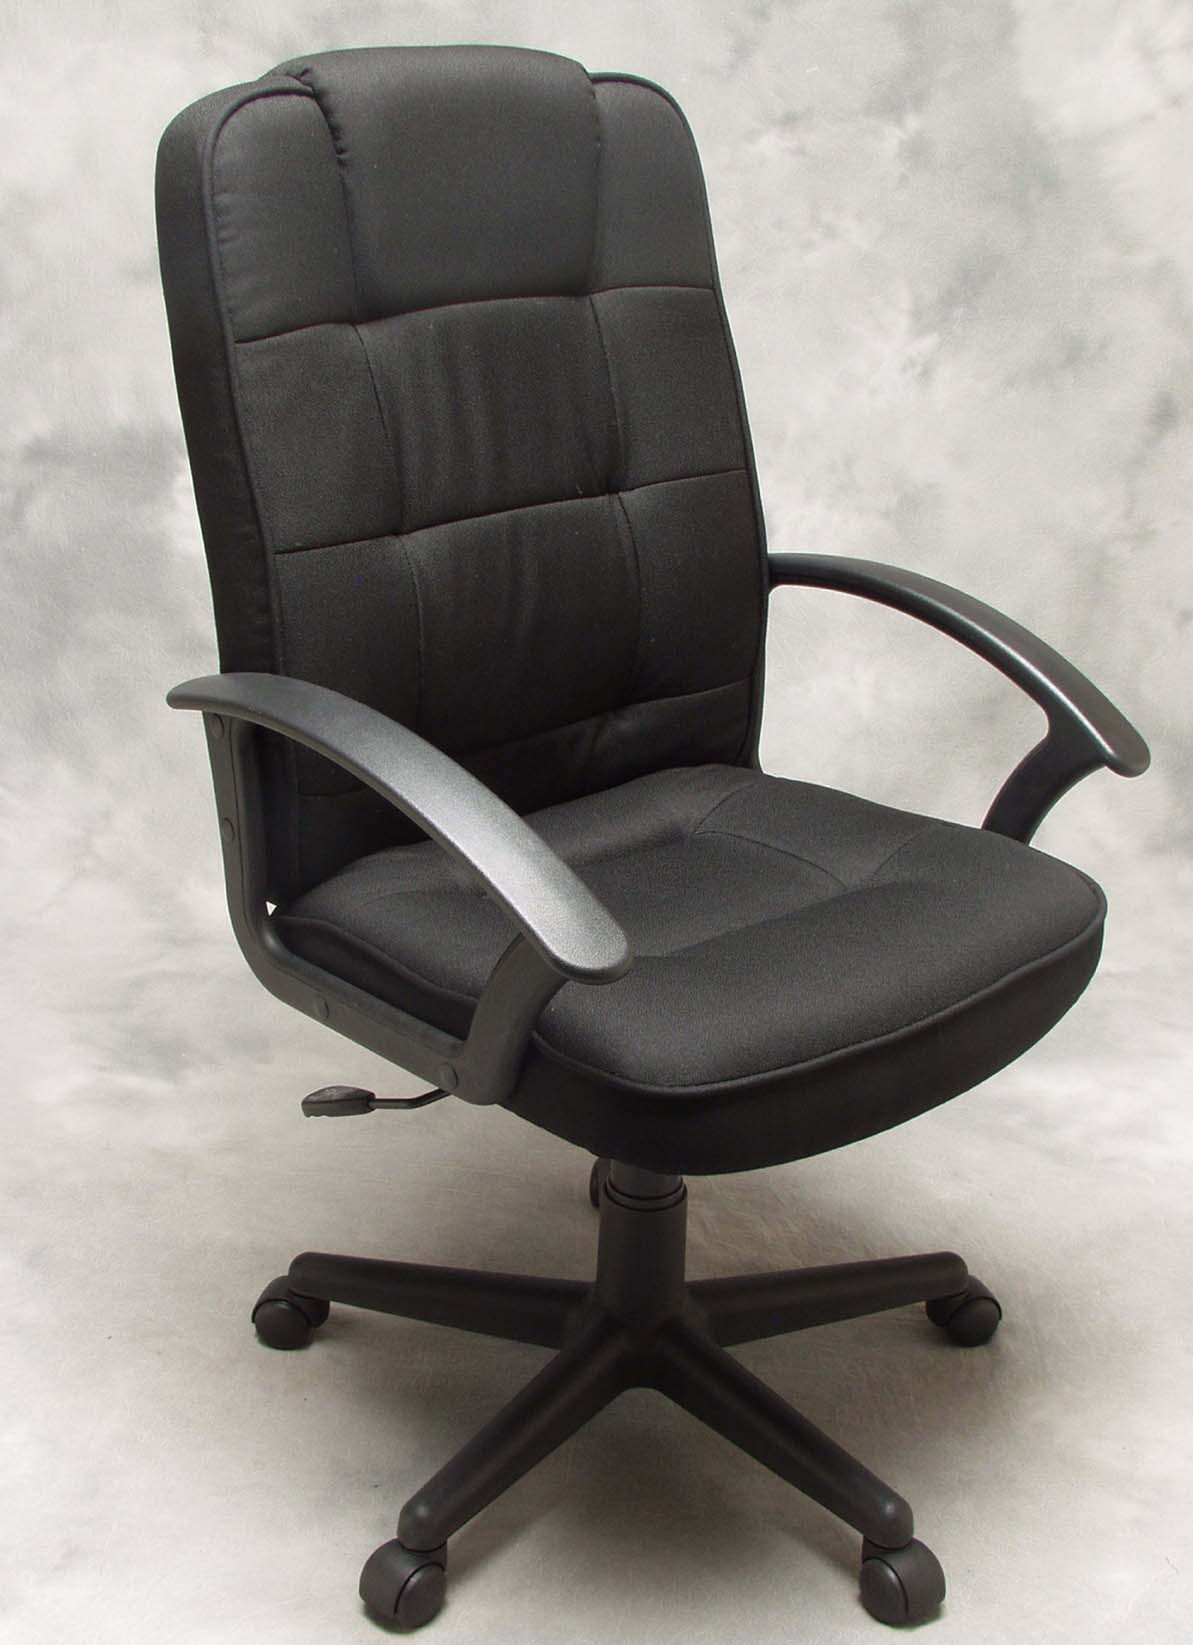 what office chair do you use? | sherdog forums | ufc, mma & boxing